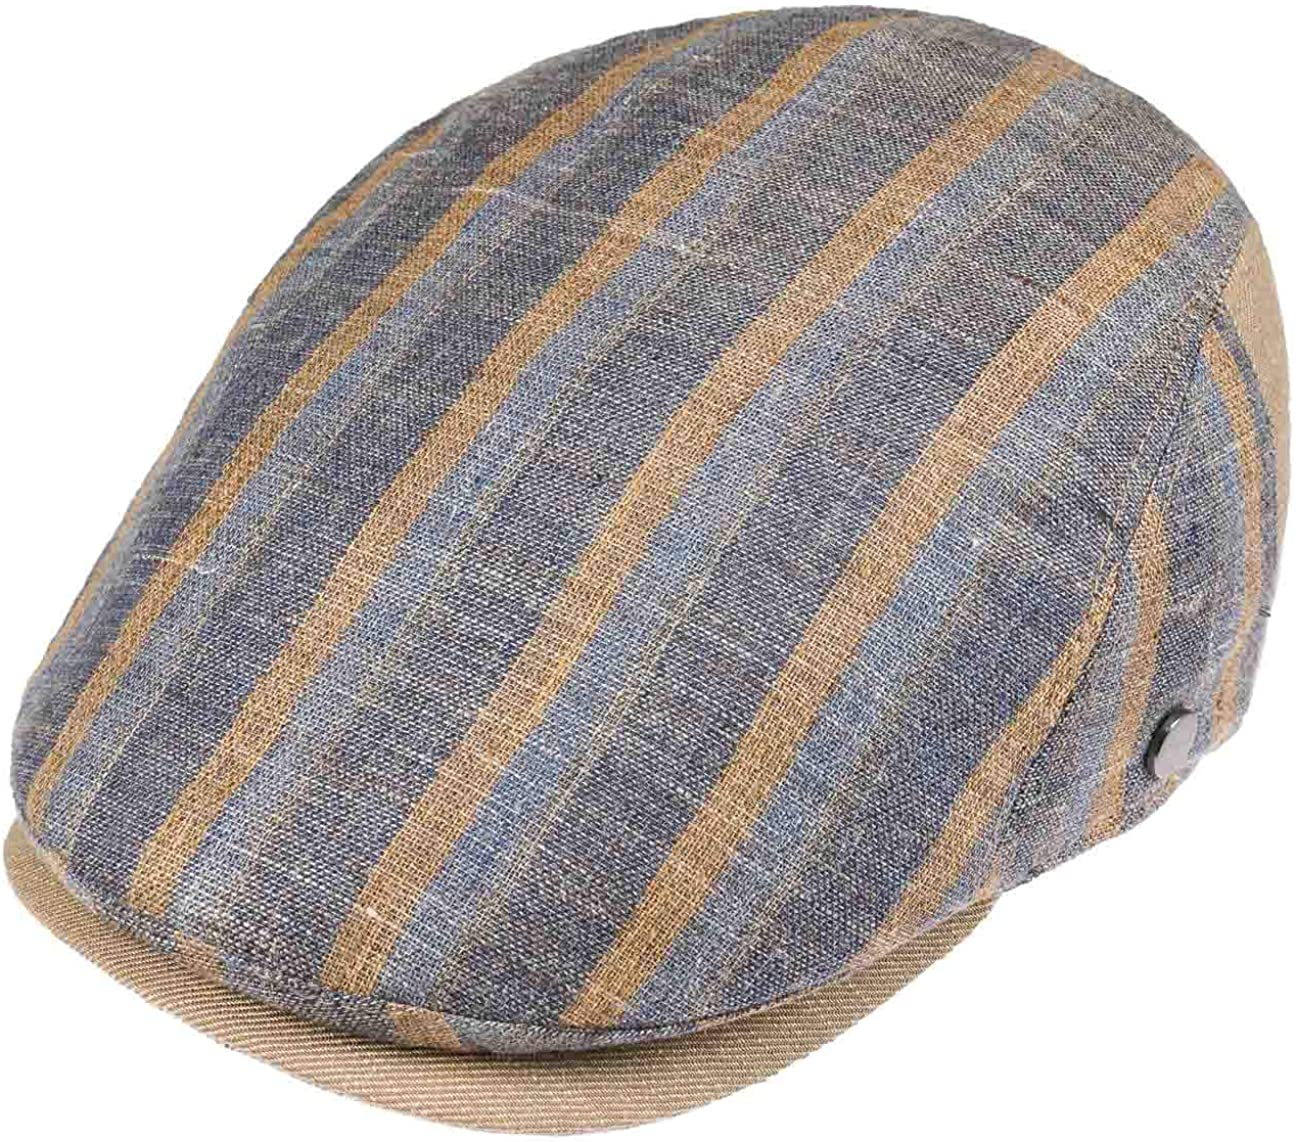 Made Italy Cappello Piatto Berretto Cotton cap con Visiera Lierys Coppola in Lino e Cotone Stripes Uomo Fodera Fodera Primavera//Estate